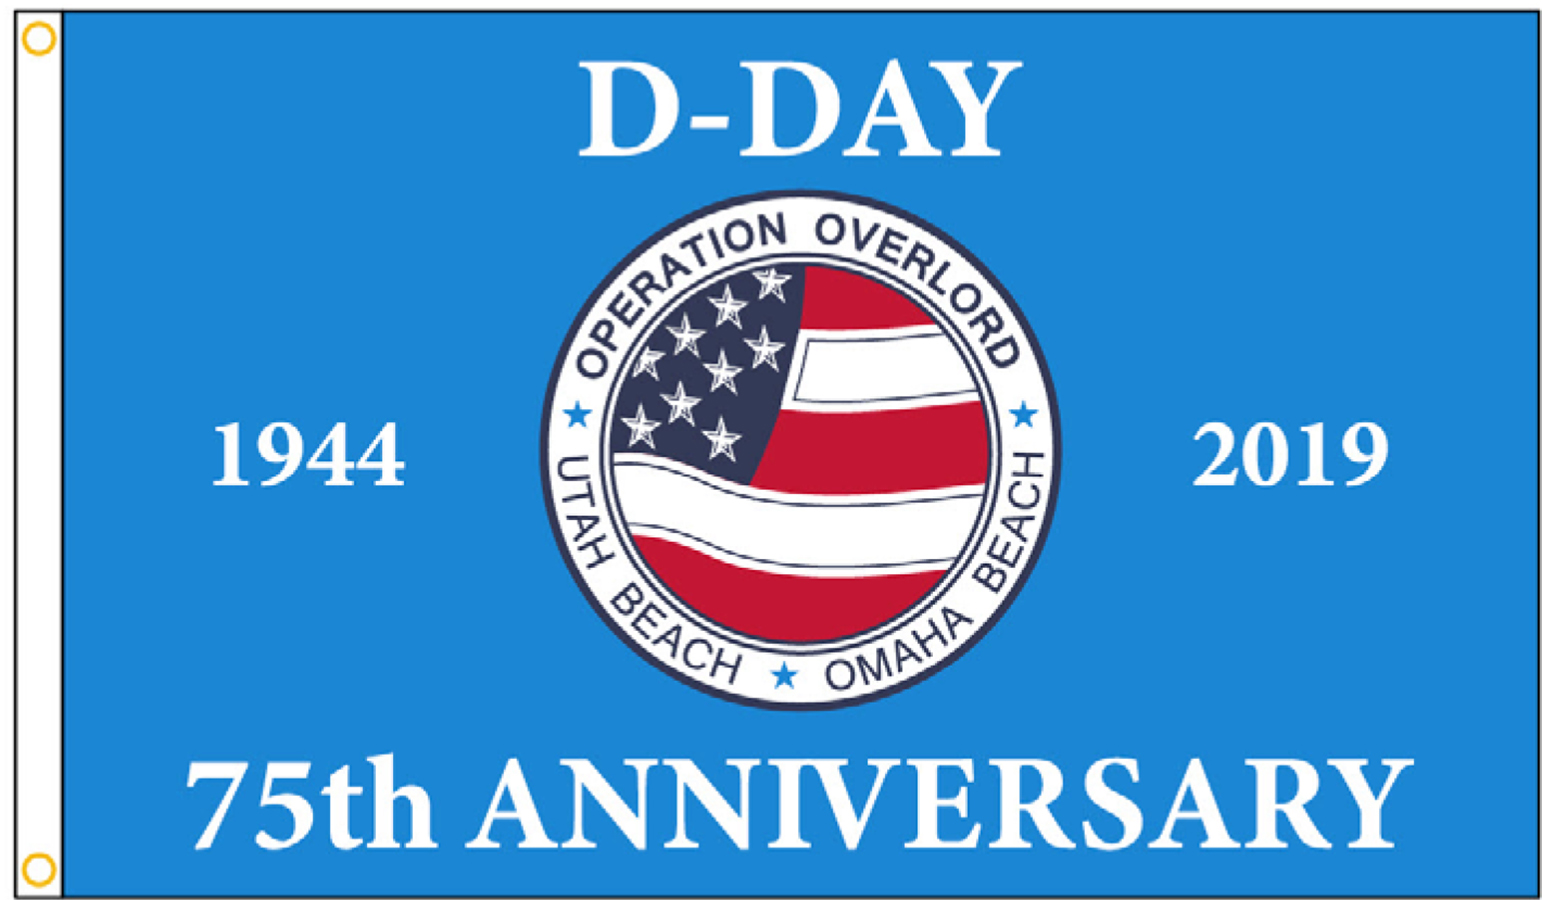 75th Anniversary of D-Day Flags